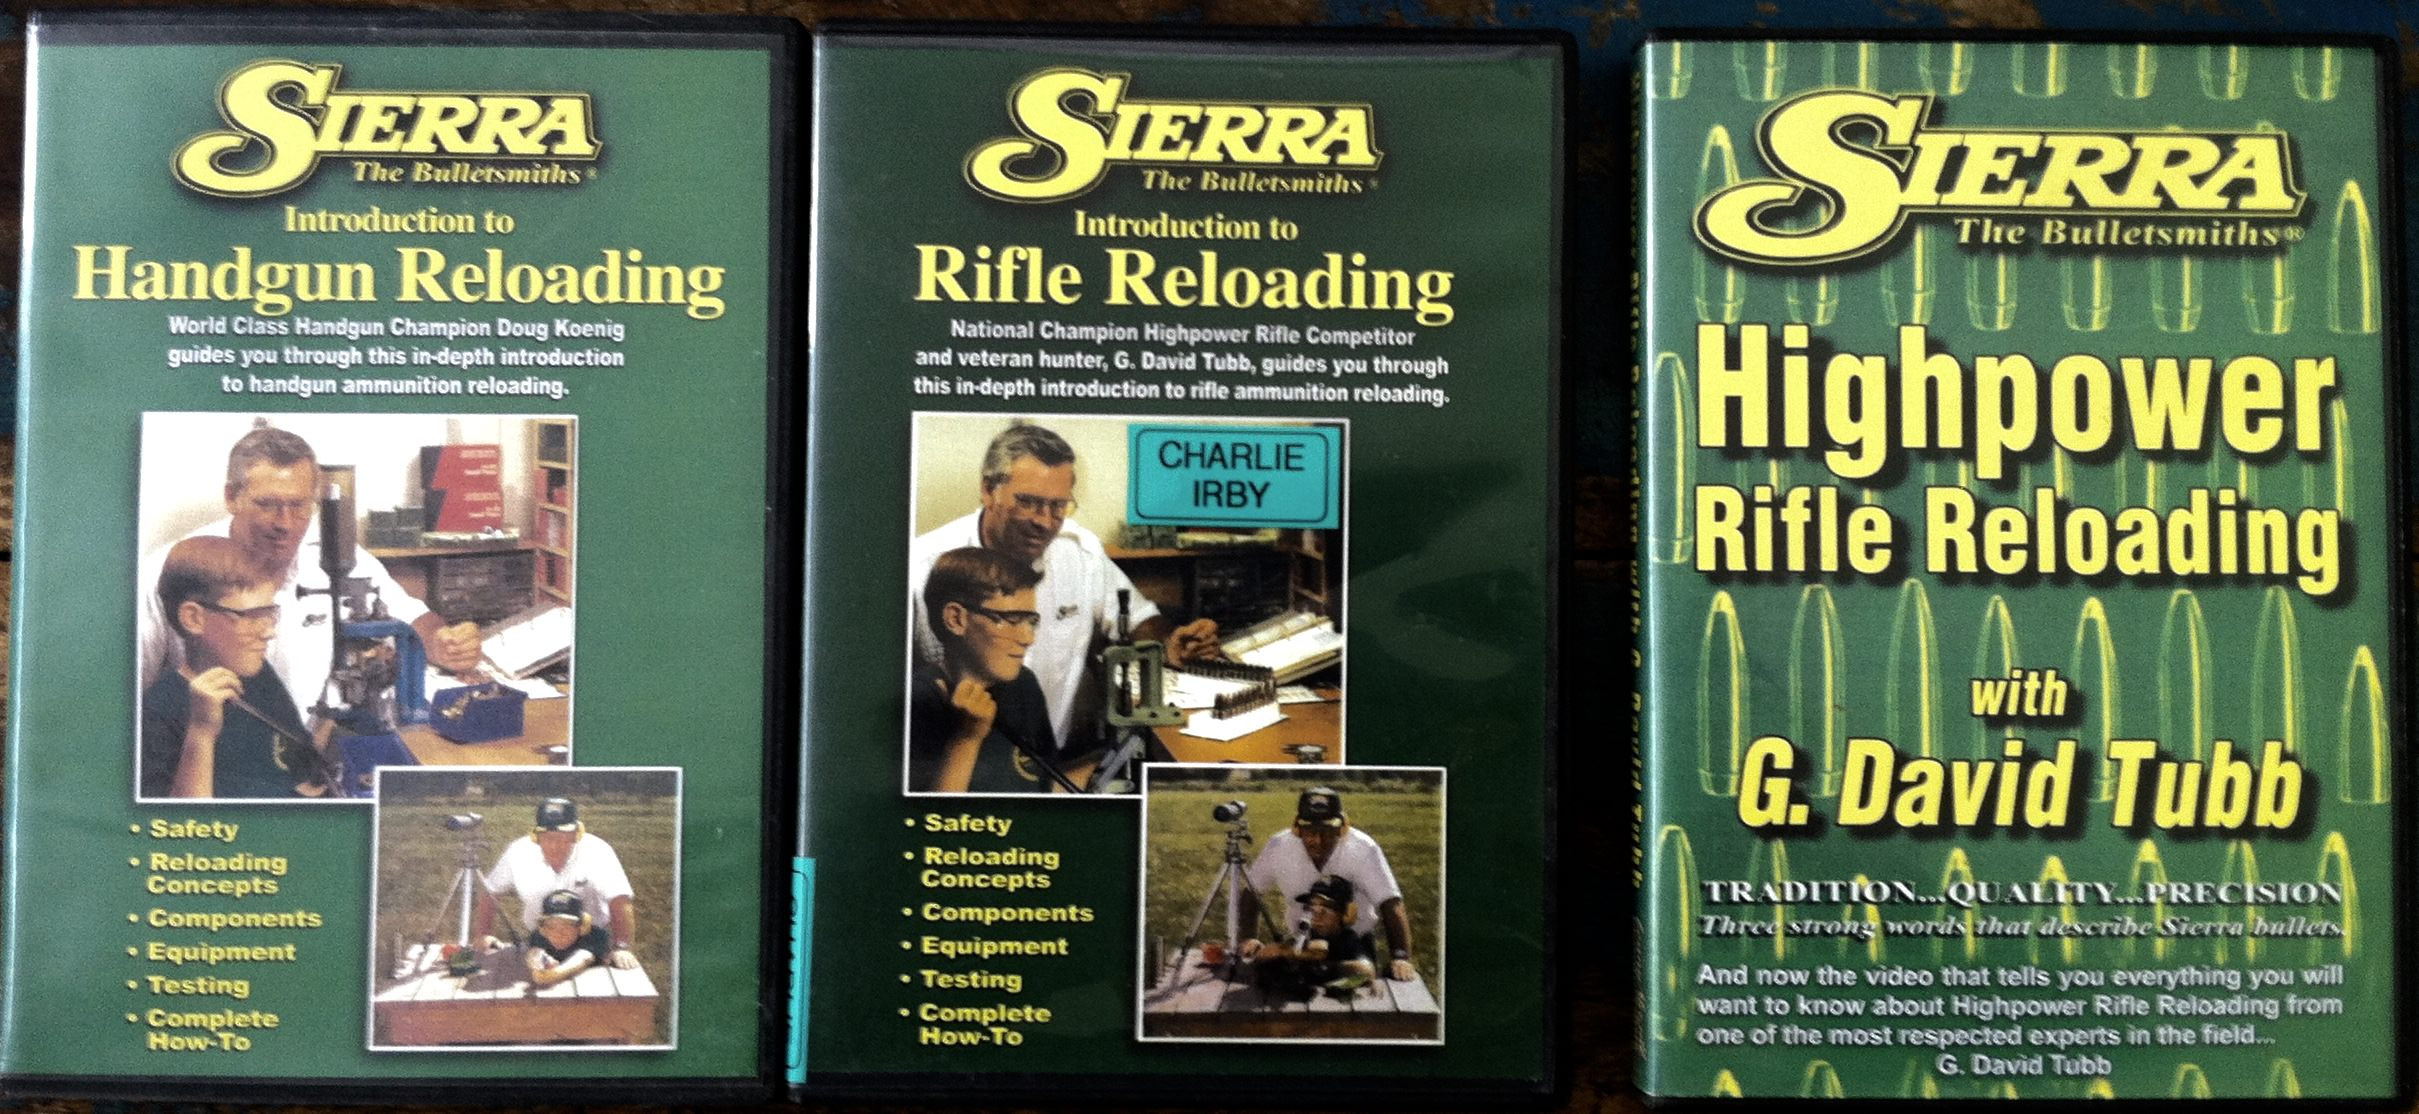 'HANDLOADING'...Building confidence in your newly acquired skill set... 2